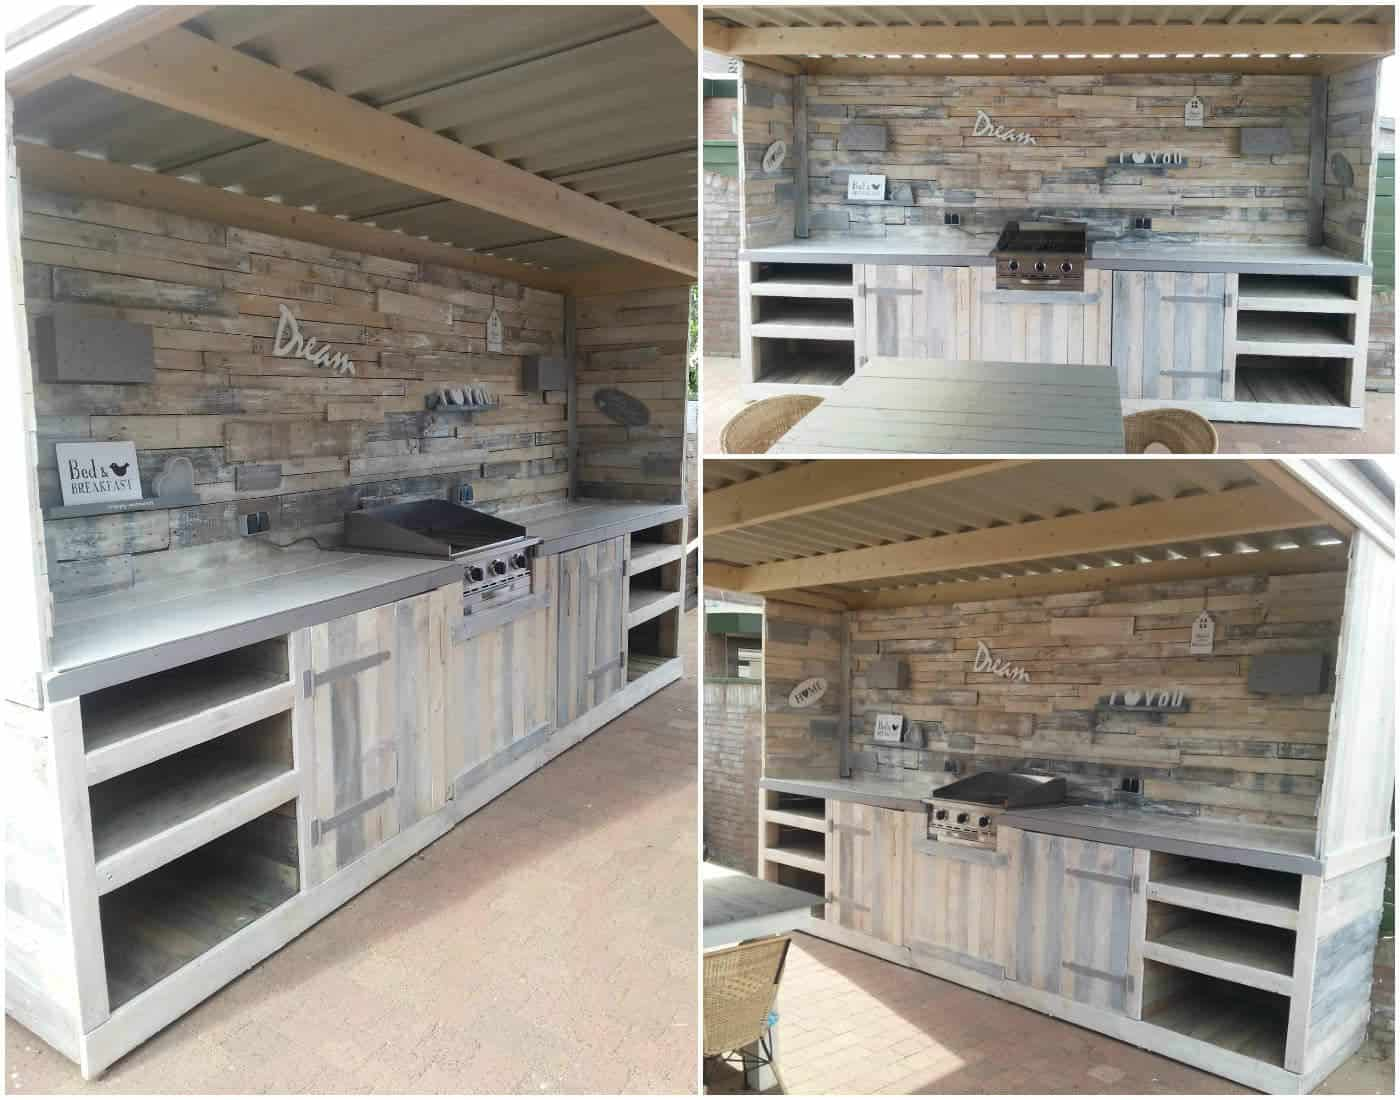 Pallet Kitchen Furniture Must See Pallet Outdoor Dream Kitchen O Pallet Ideas O 1001 Pallets